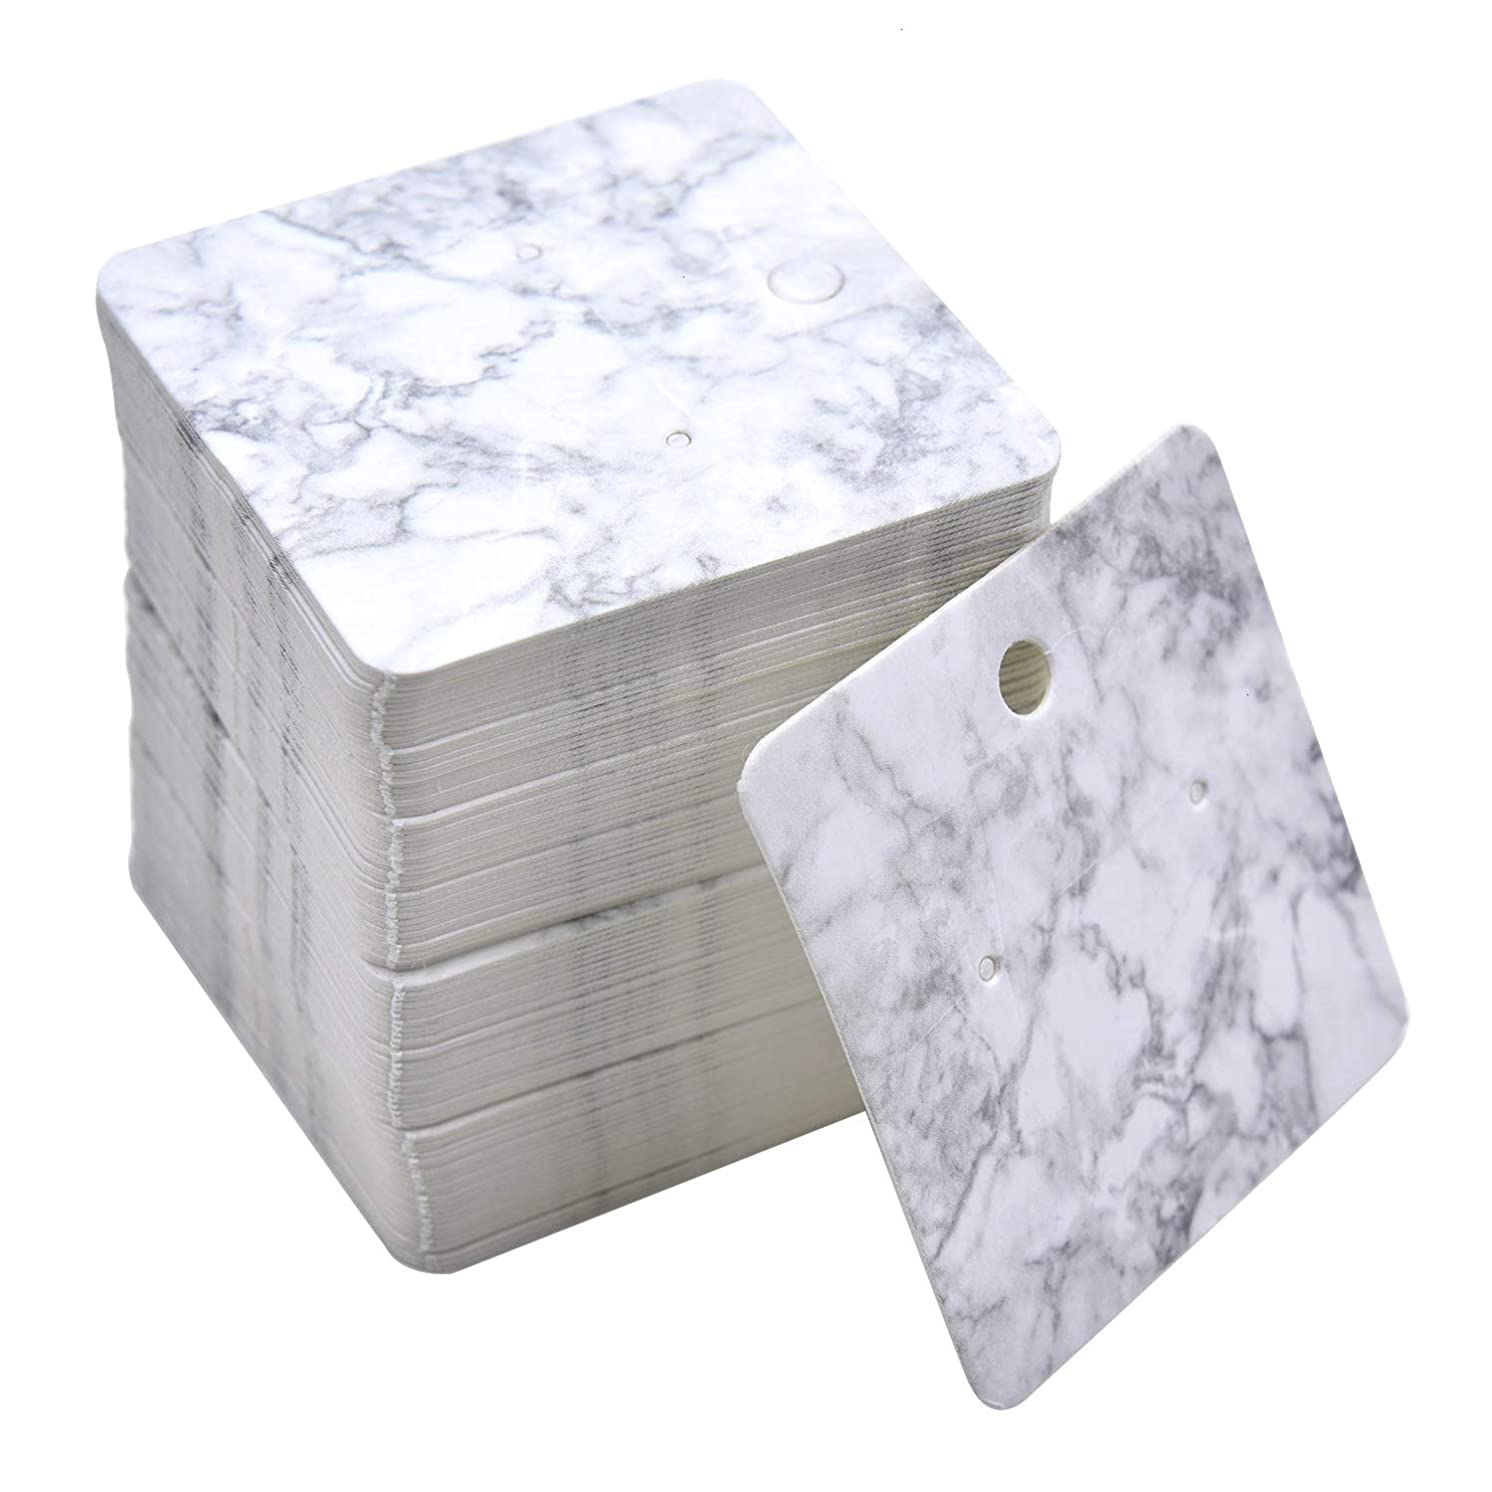 Monrocco 100 Pcs Paper Earring Display Cards Marble Design Earring Card Holder Blank Paper Tags for DIY Ear Studs and Earrings